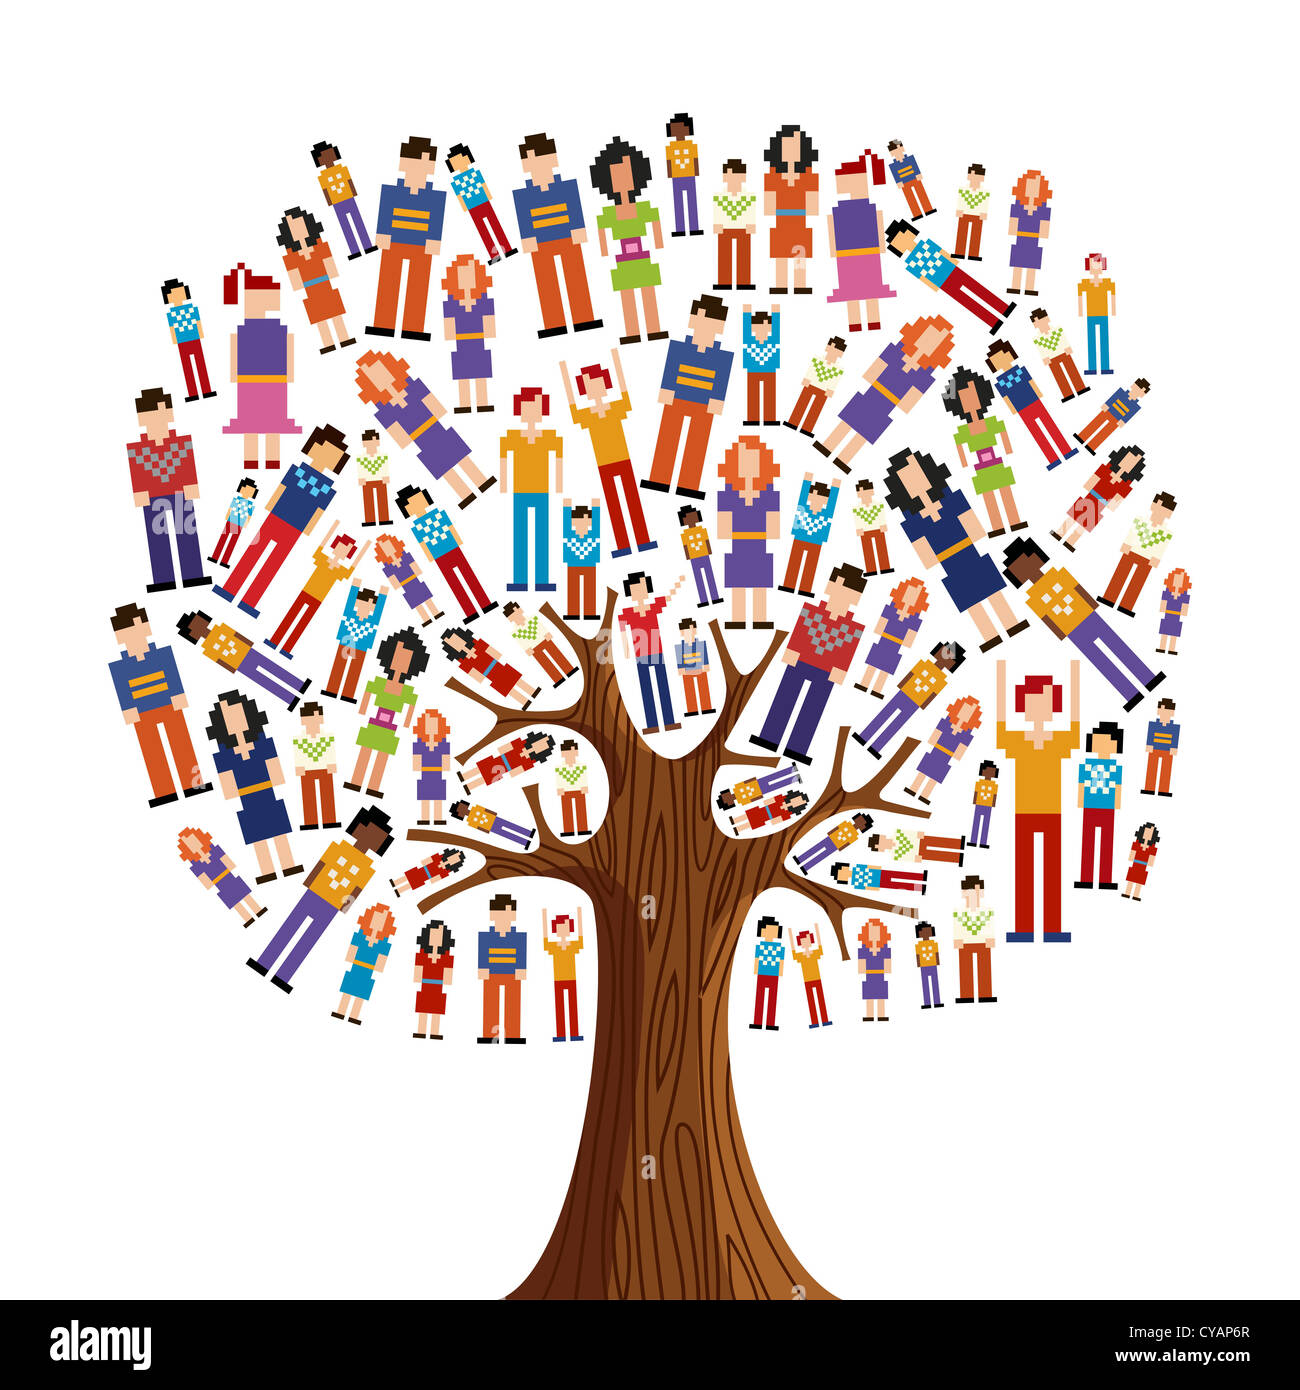 Isolated diversity tree with pixelated people illustration. Vector file layered for easy manipulation and custom - Stock Image